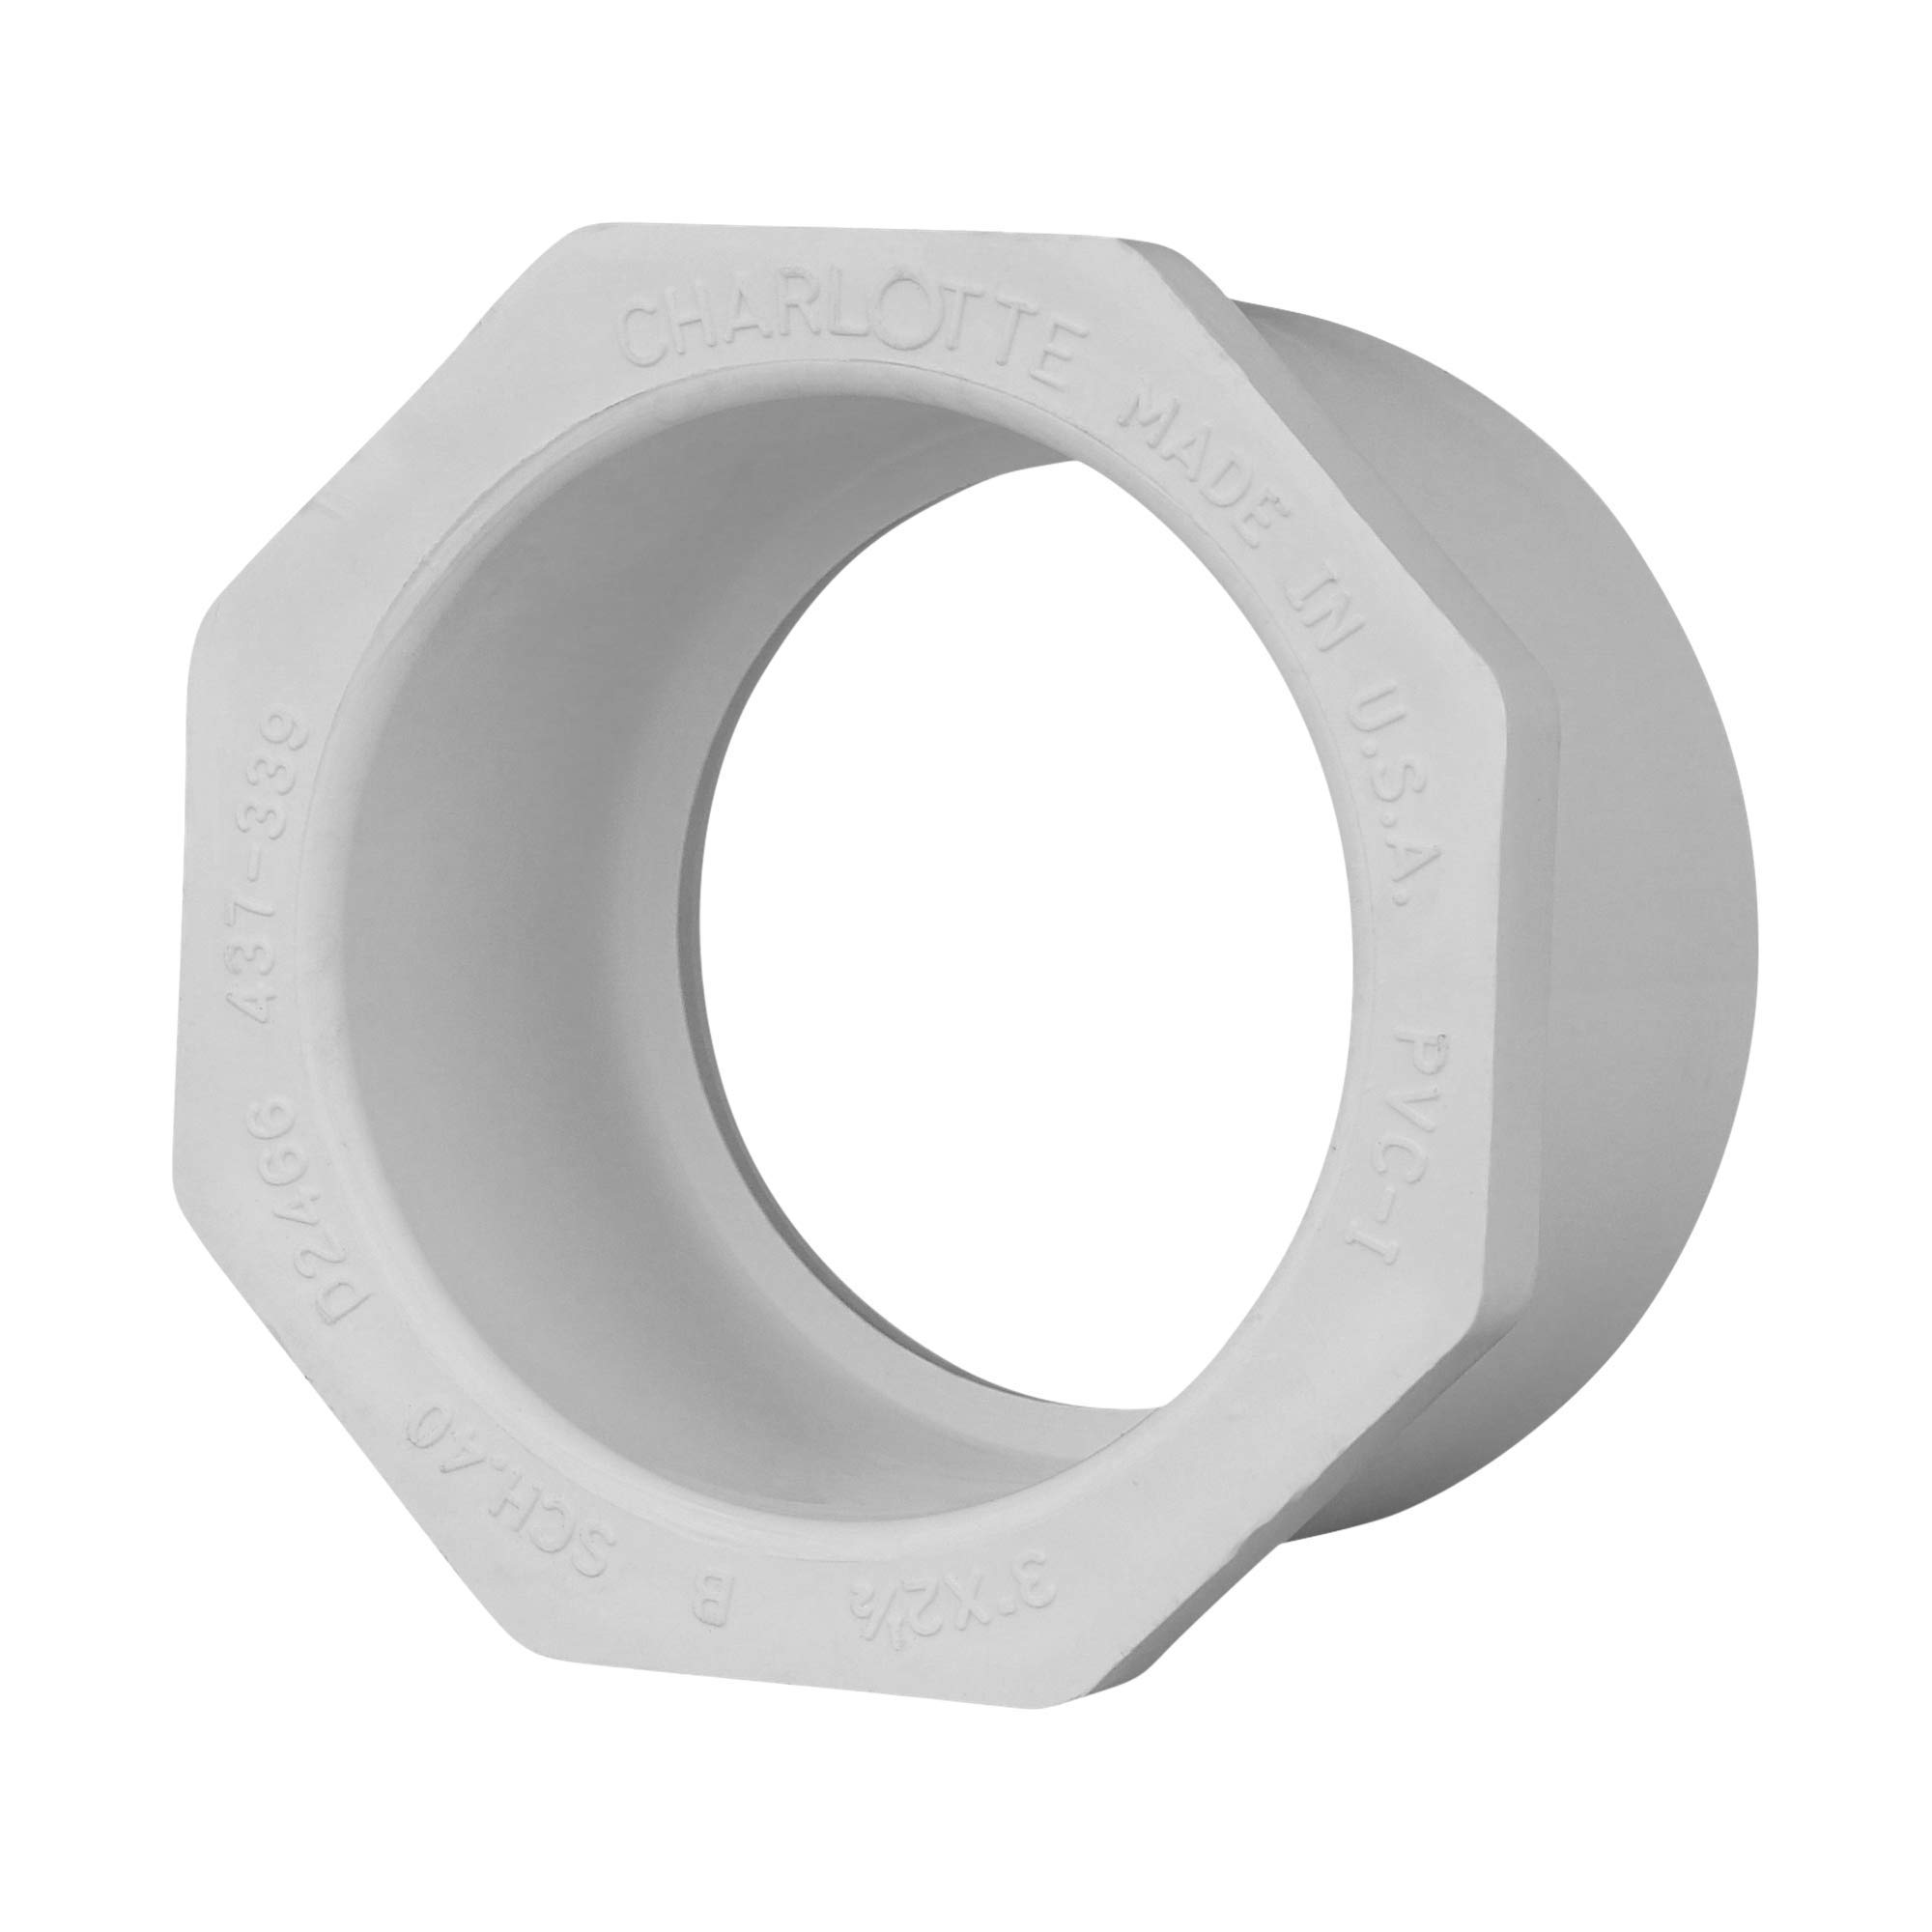 """Charlotte Pipe 3"""" X 2"""" Schedule 40 PVC 1/2"""" Reducer Bushing Pipe Fitting - (Spigot x Socket) Schedule 40 PVC Pressure Durable and Easy to Install for Home or Industrial Use (Single Unit)"""